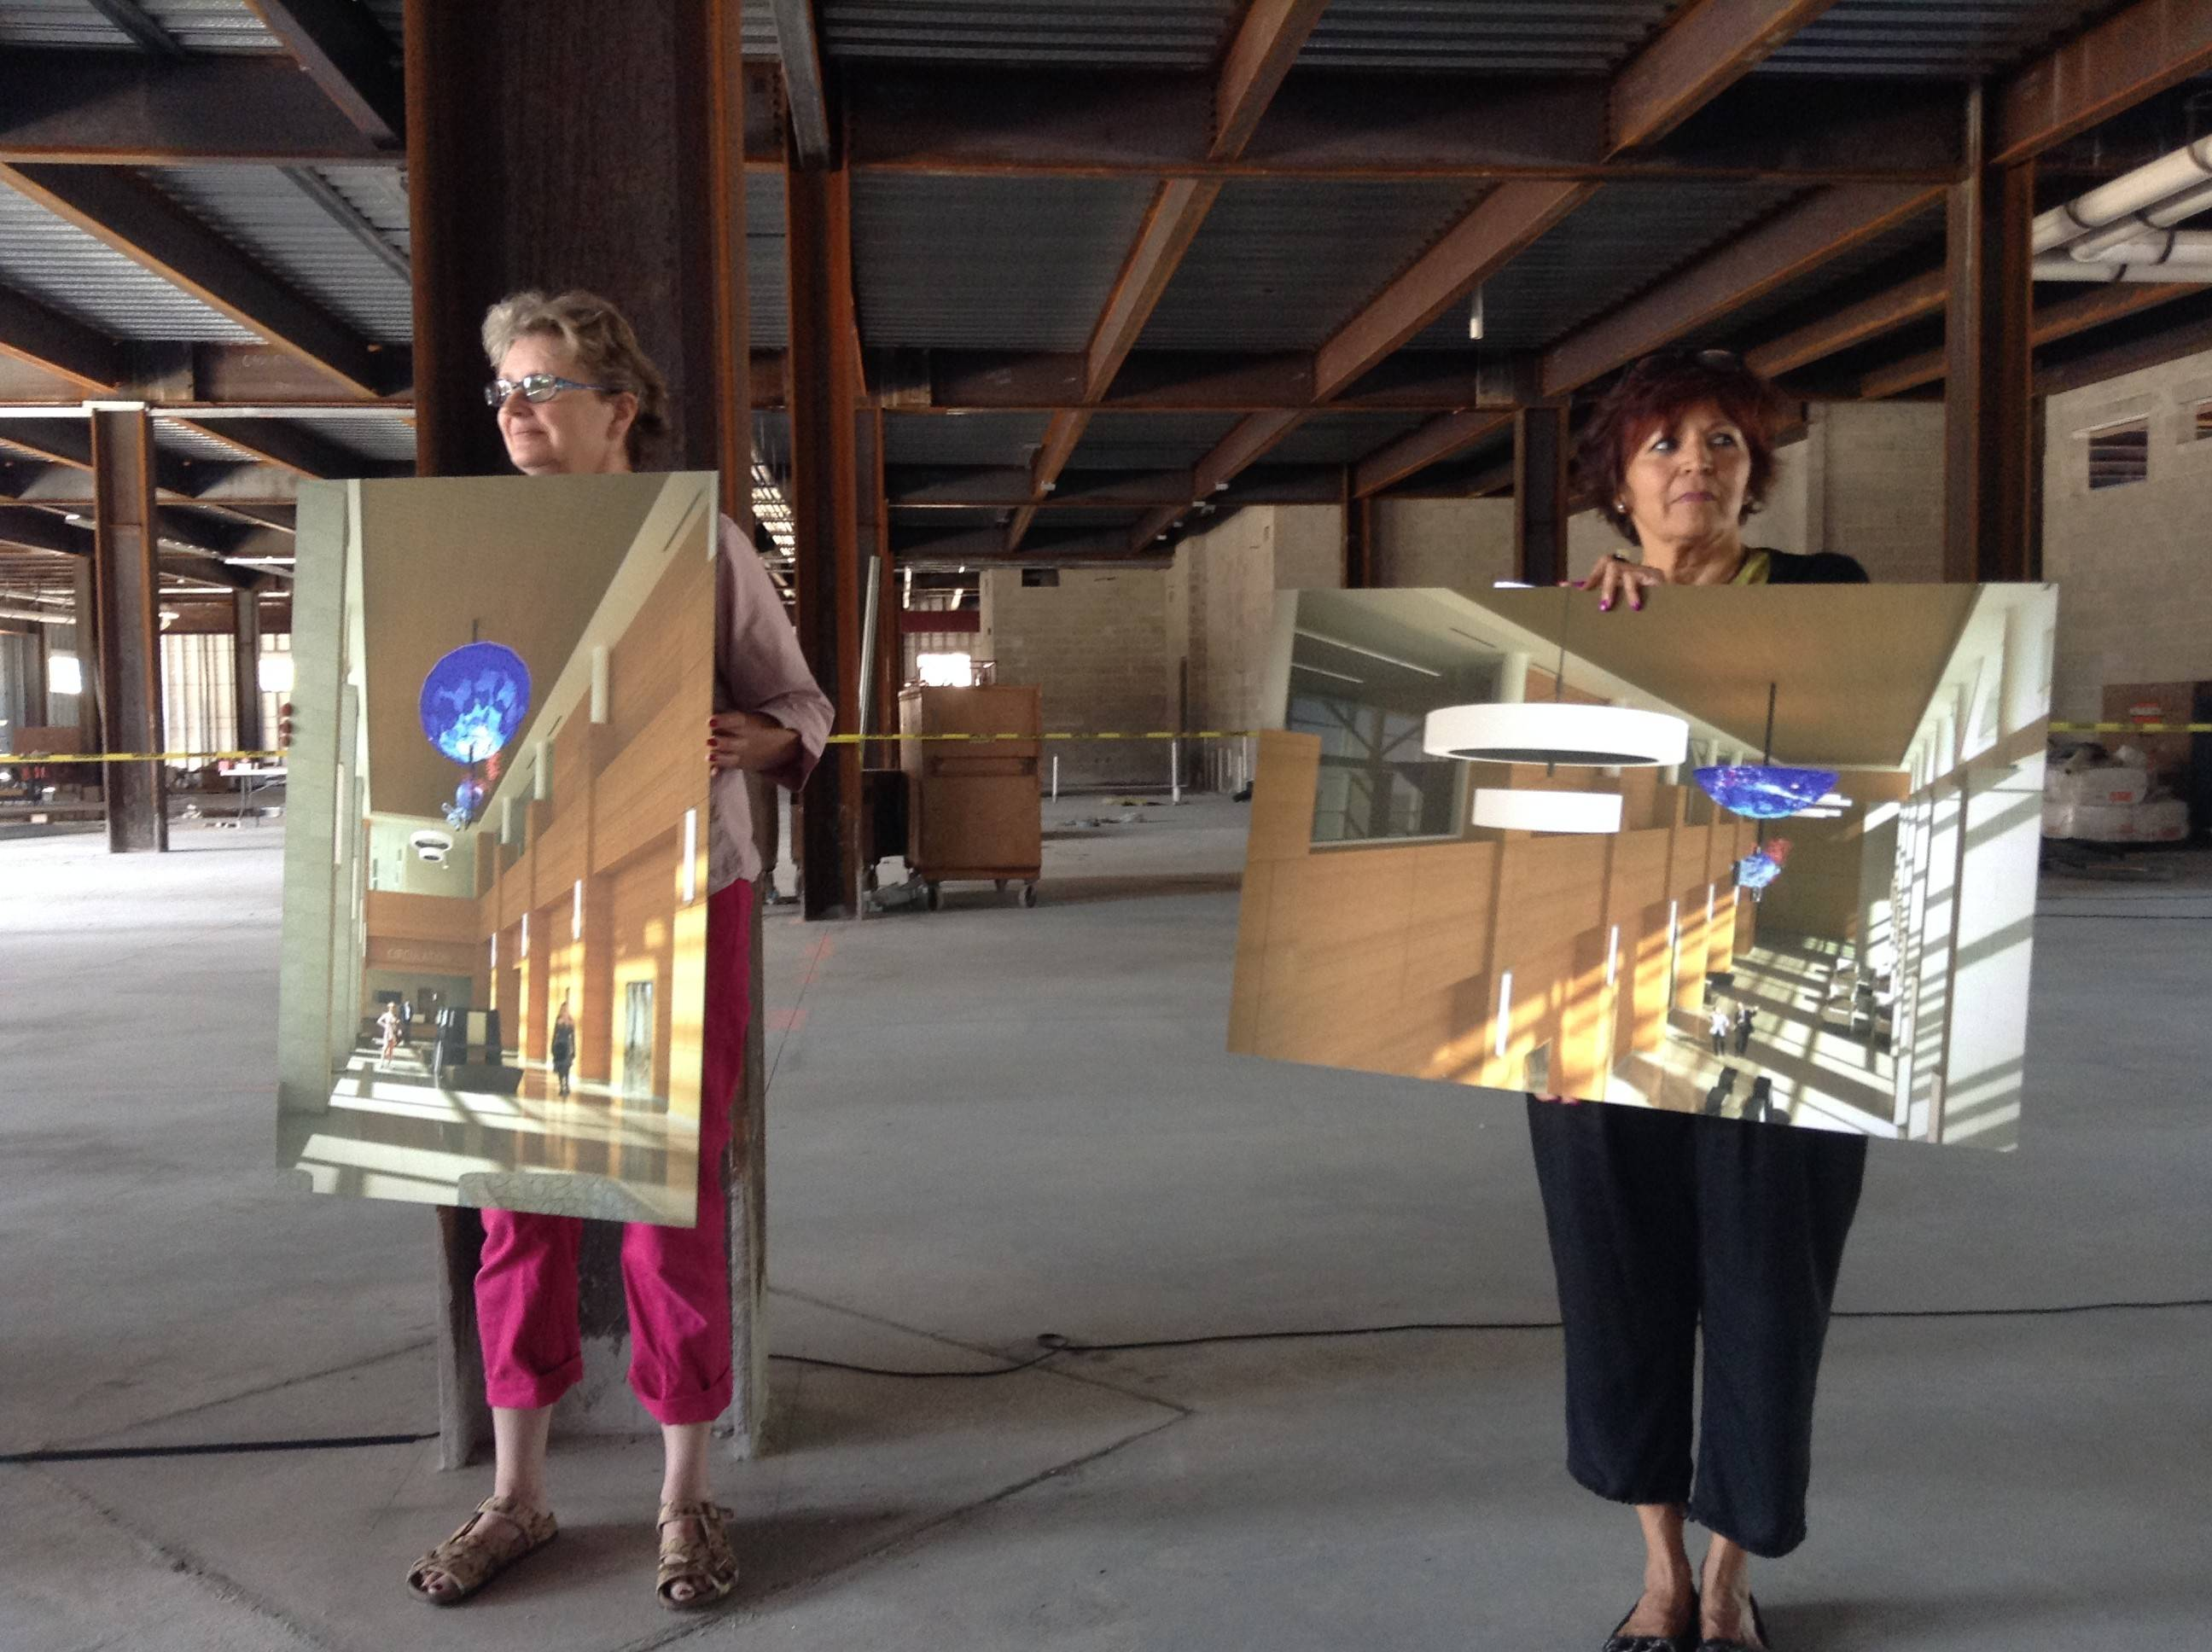 Aurora Public Library Foundation board members Ree Kline and Dee Basile showed community members Thursday of what will soon become of the concrete and steel shell behind them.